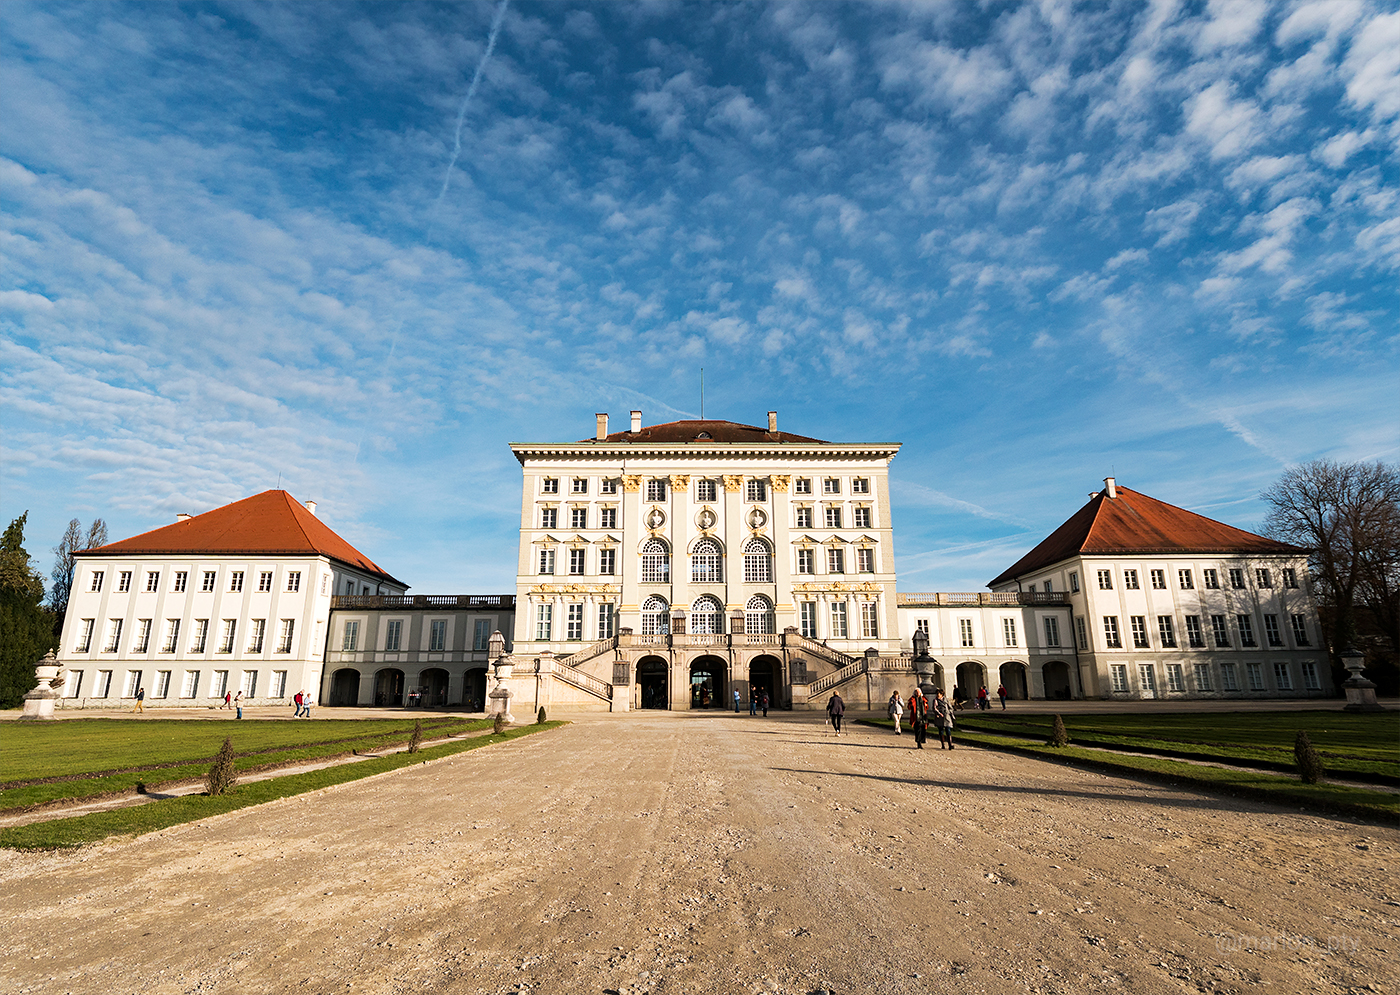 View of the rear of the Nymphenburg Palace. Photo: Marlon I. Torres